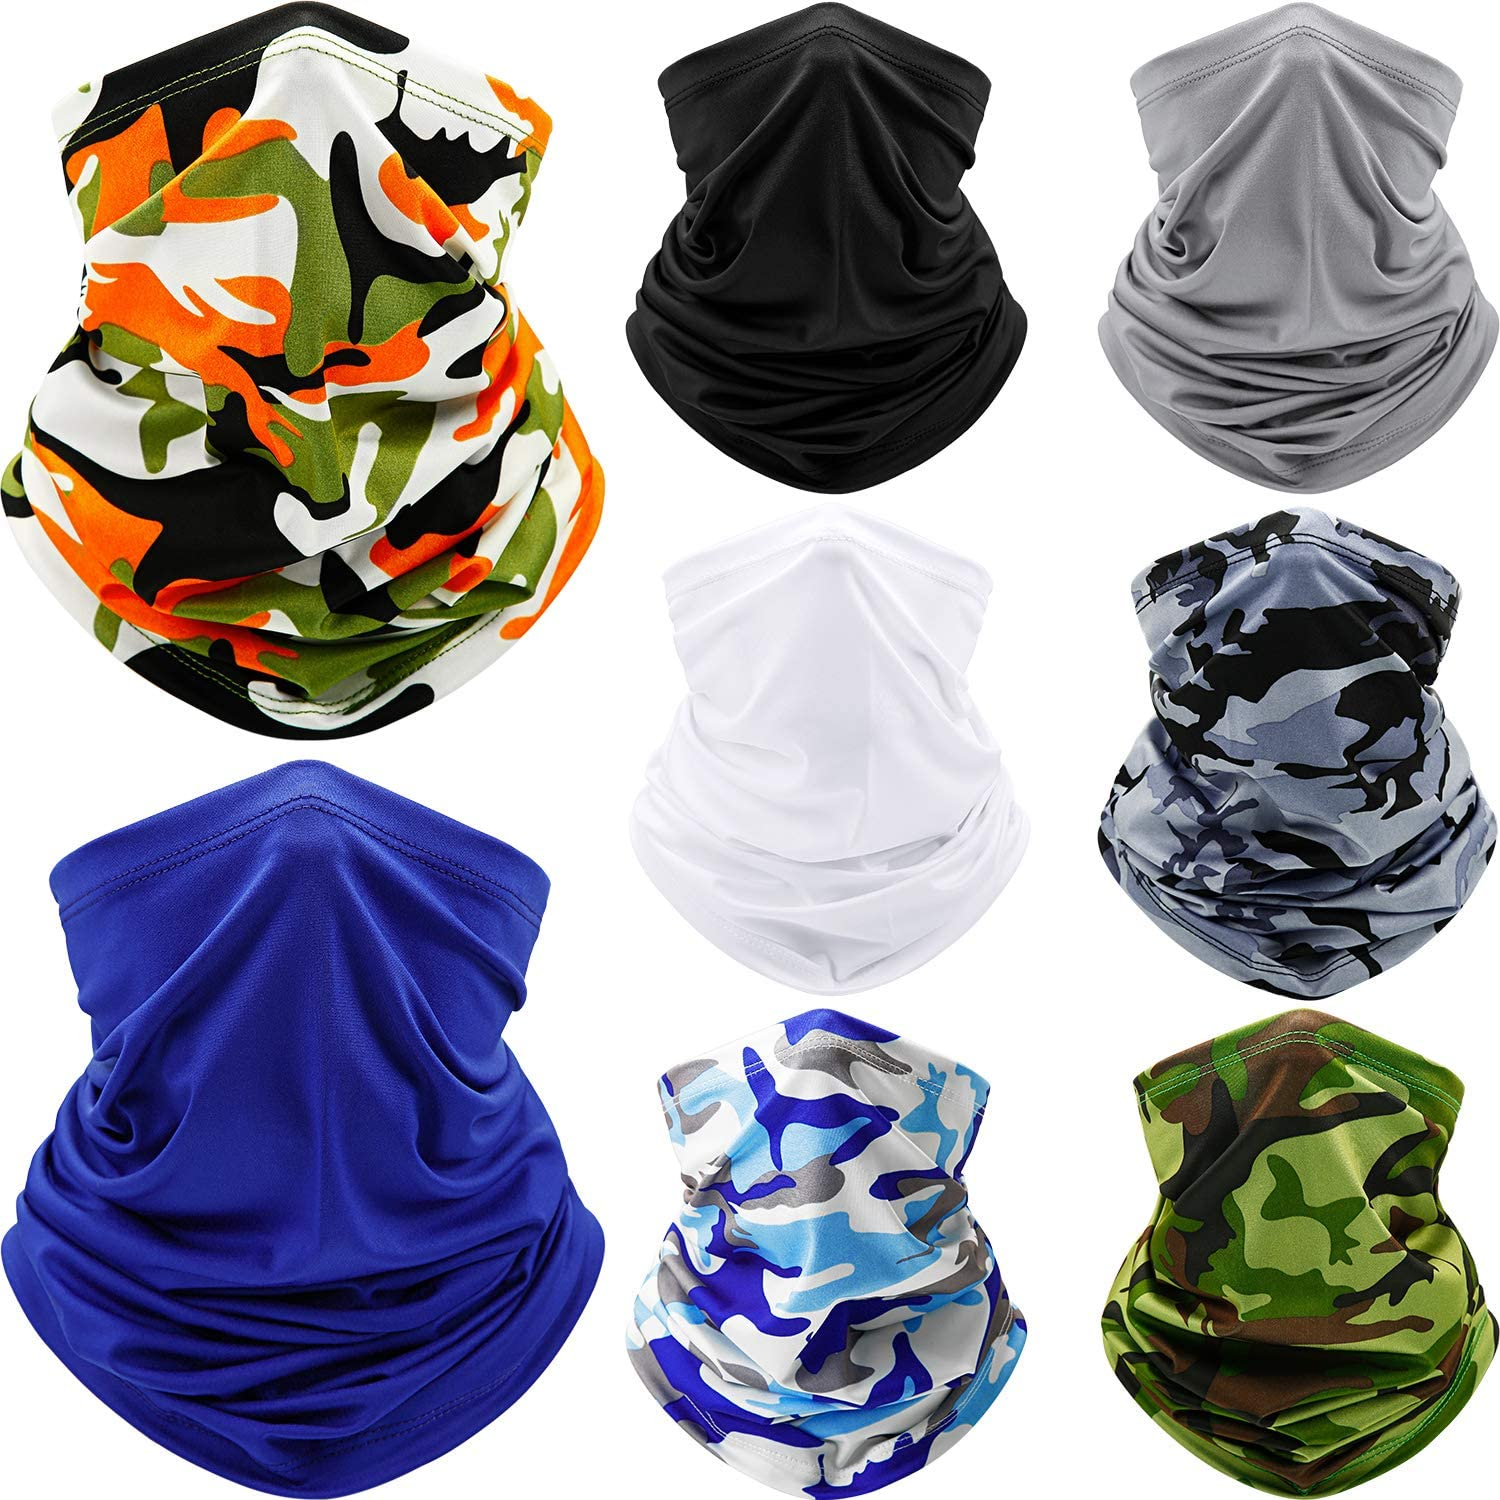 8 Pieces Summer UV Protection Bandana Neck Gaiter Breathable Cooling Neck Scarf for Men Women Sports Outdoor Dust Running Cycling Hiking Fishing